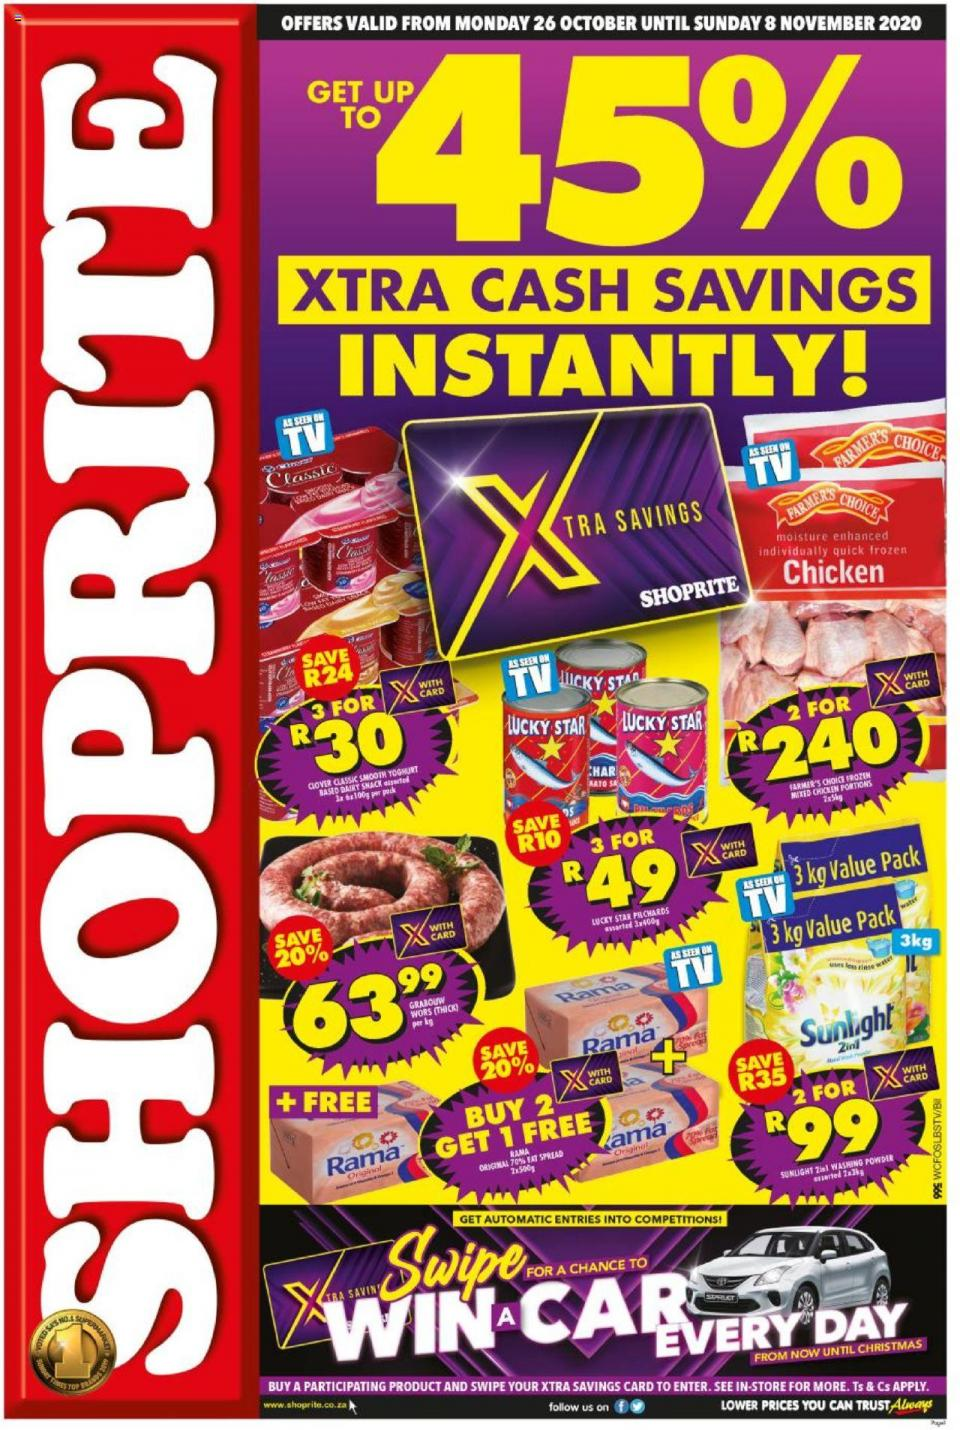 shoprite specials 45 xtra cash savings 26 october 2020